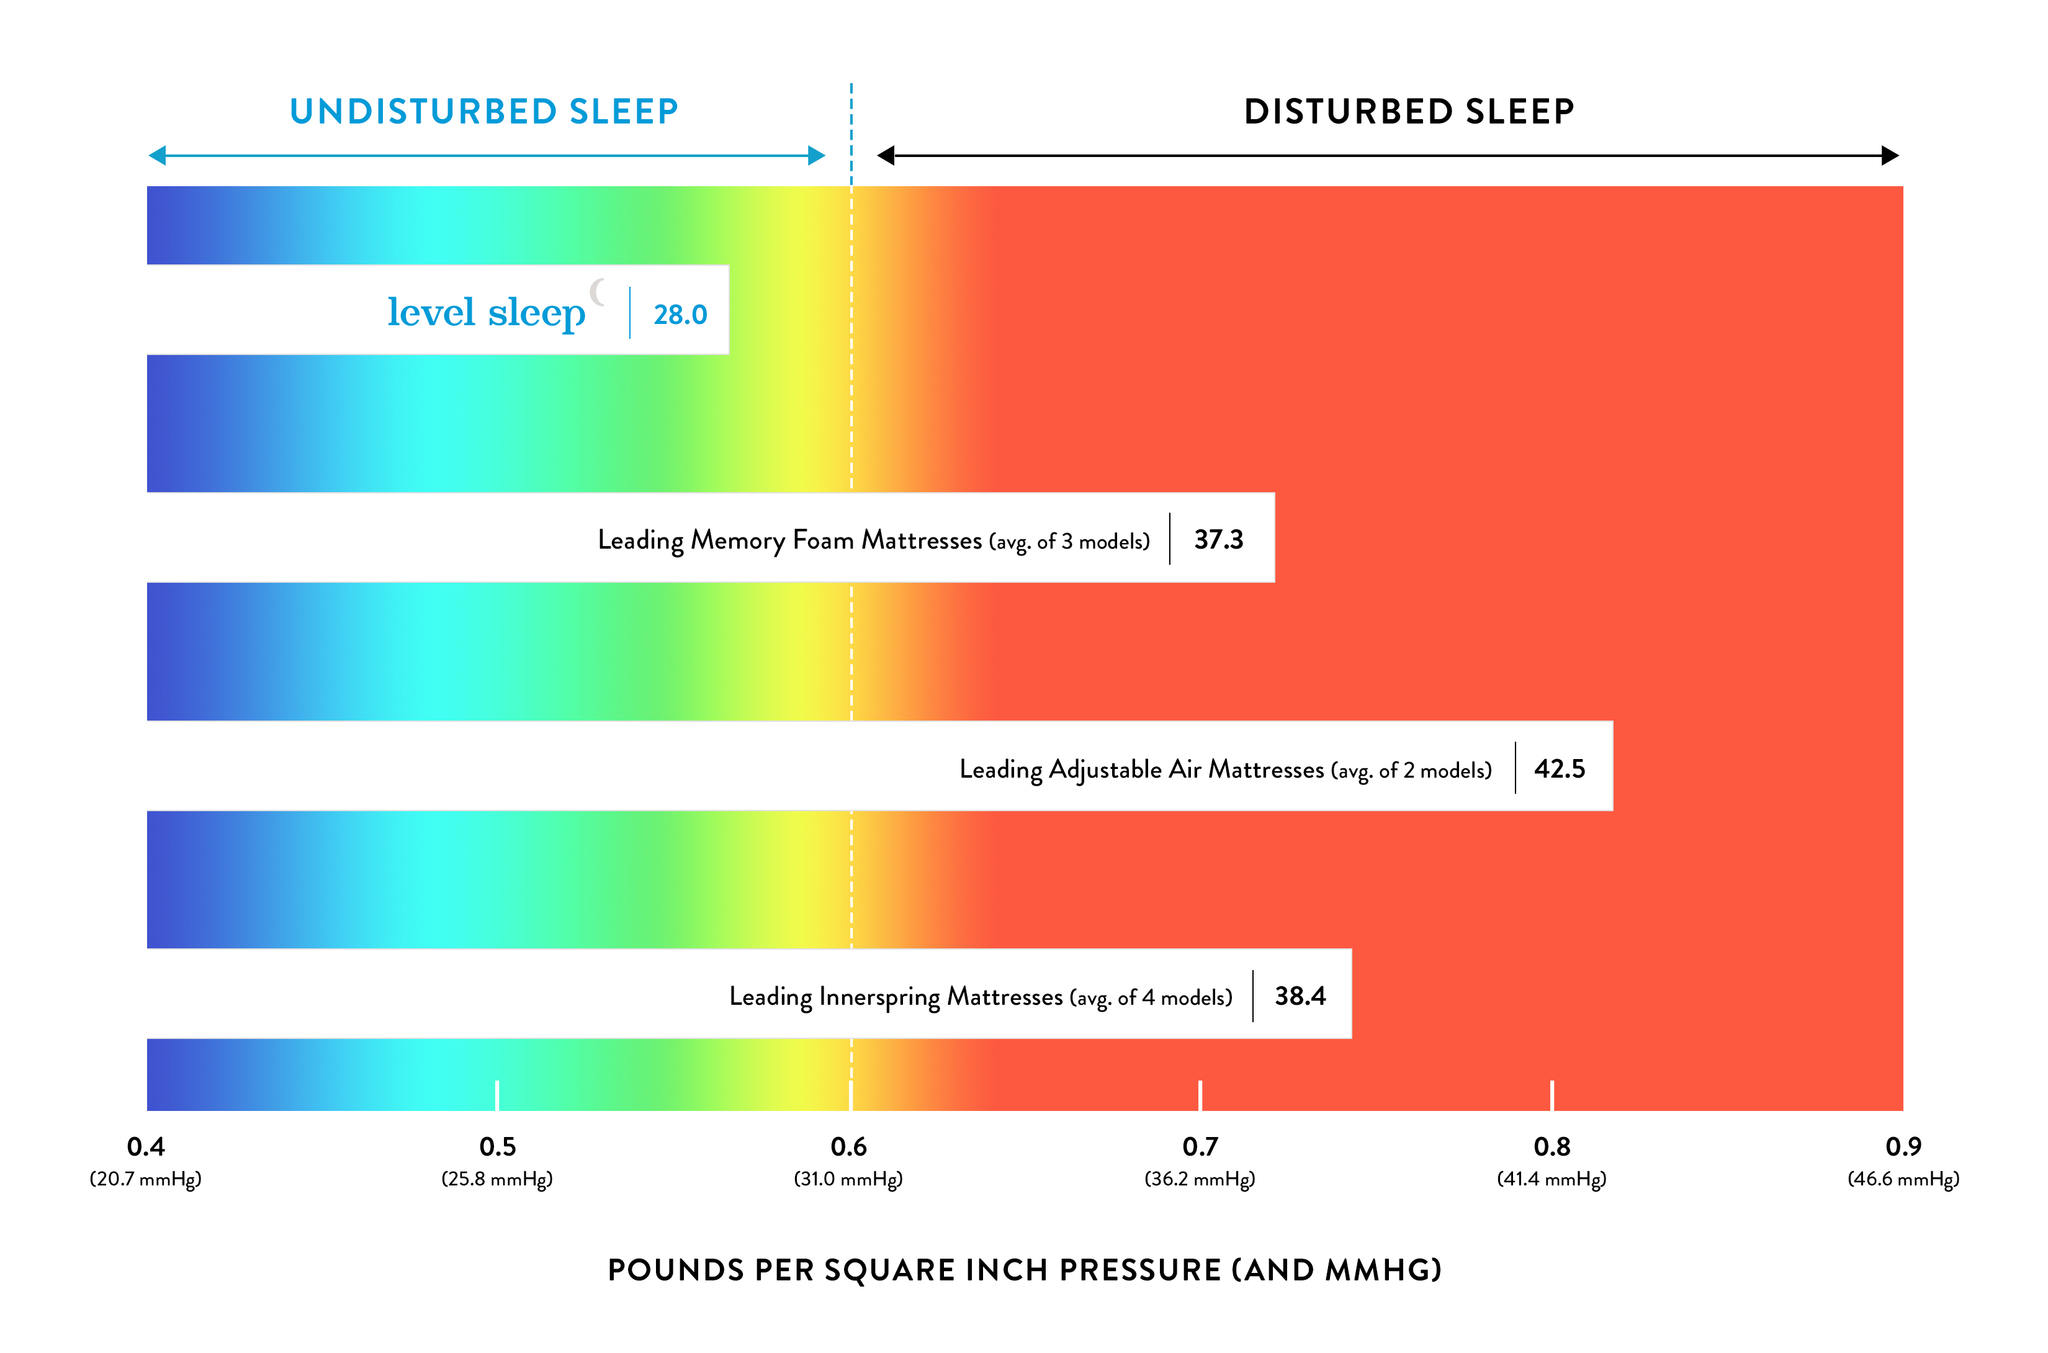 disturbed sleep chart by mattress